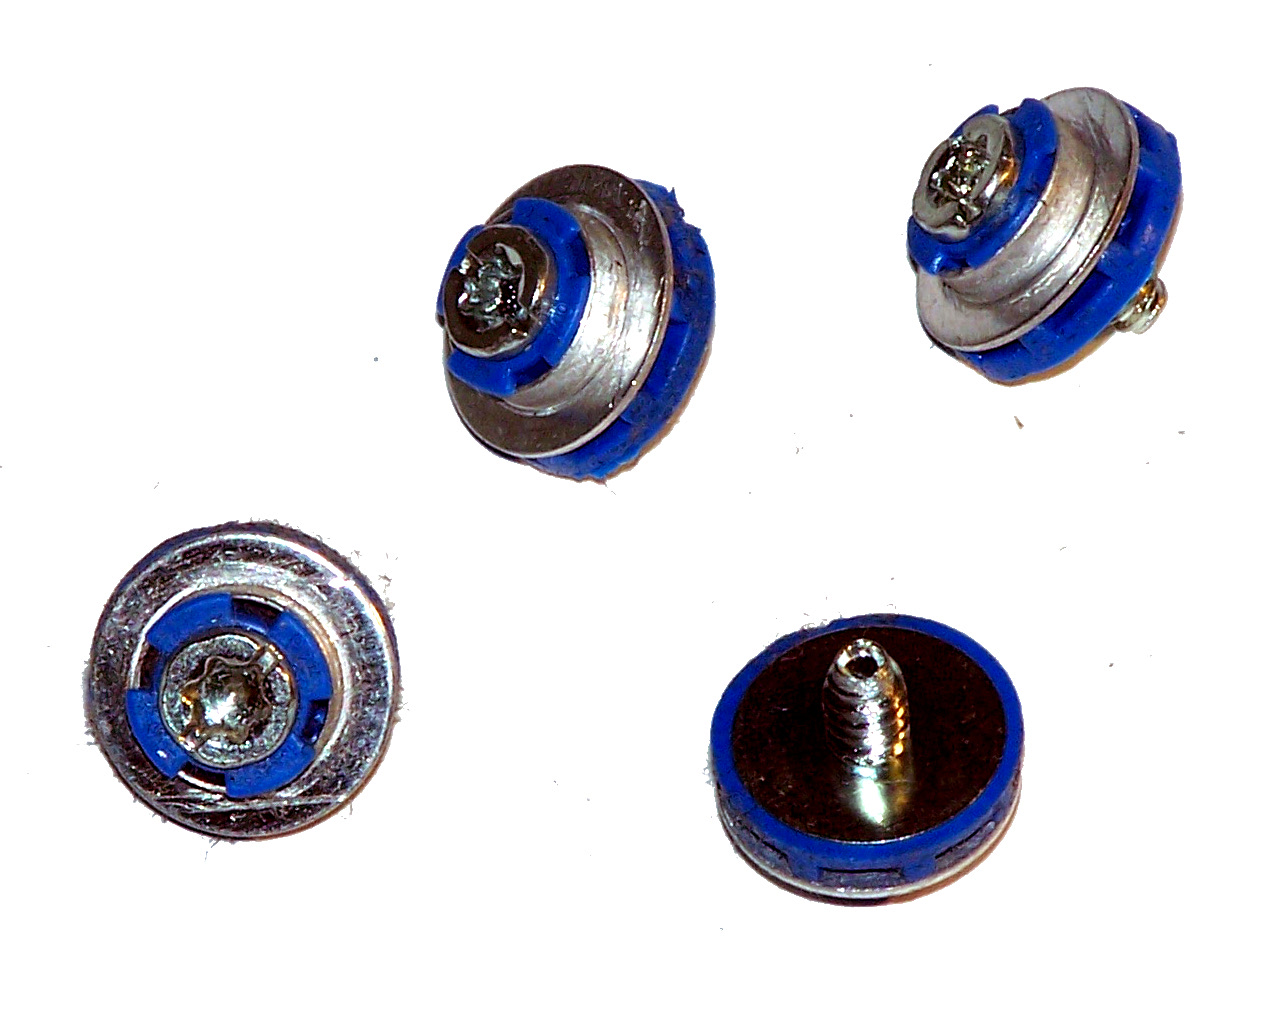 black and blue m3 isolation mounting guide screws